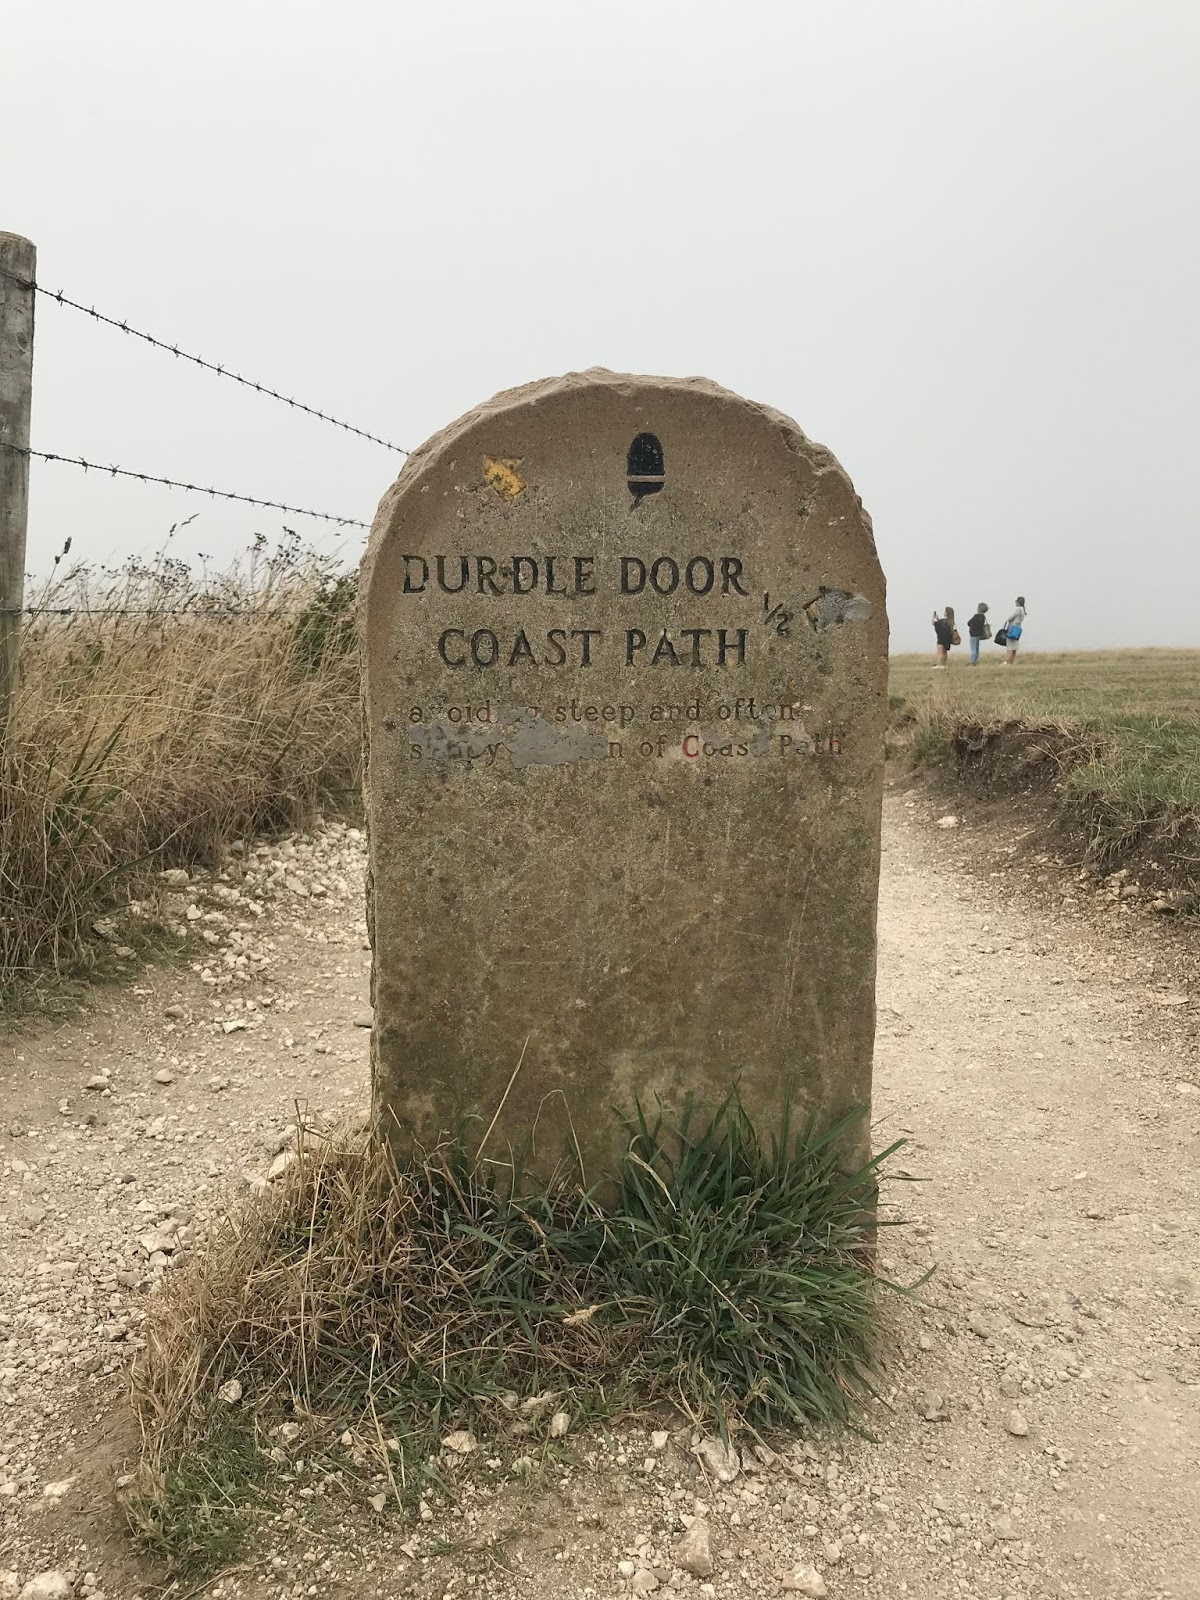 Jurassic coastal path to Durdle Door